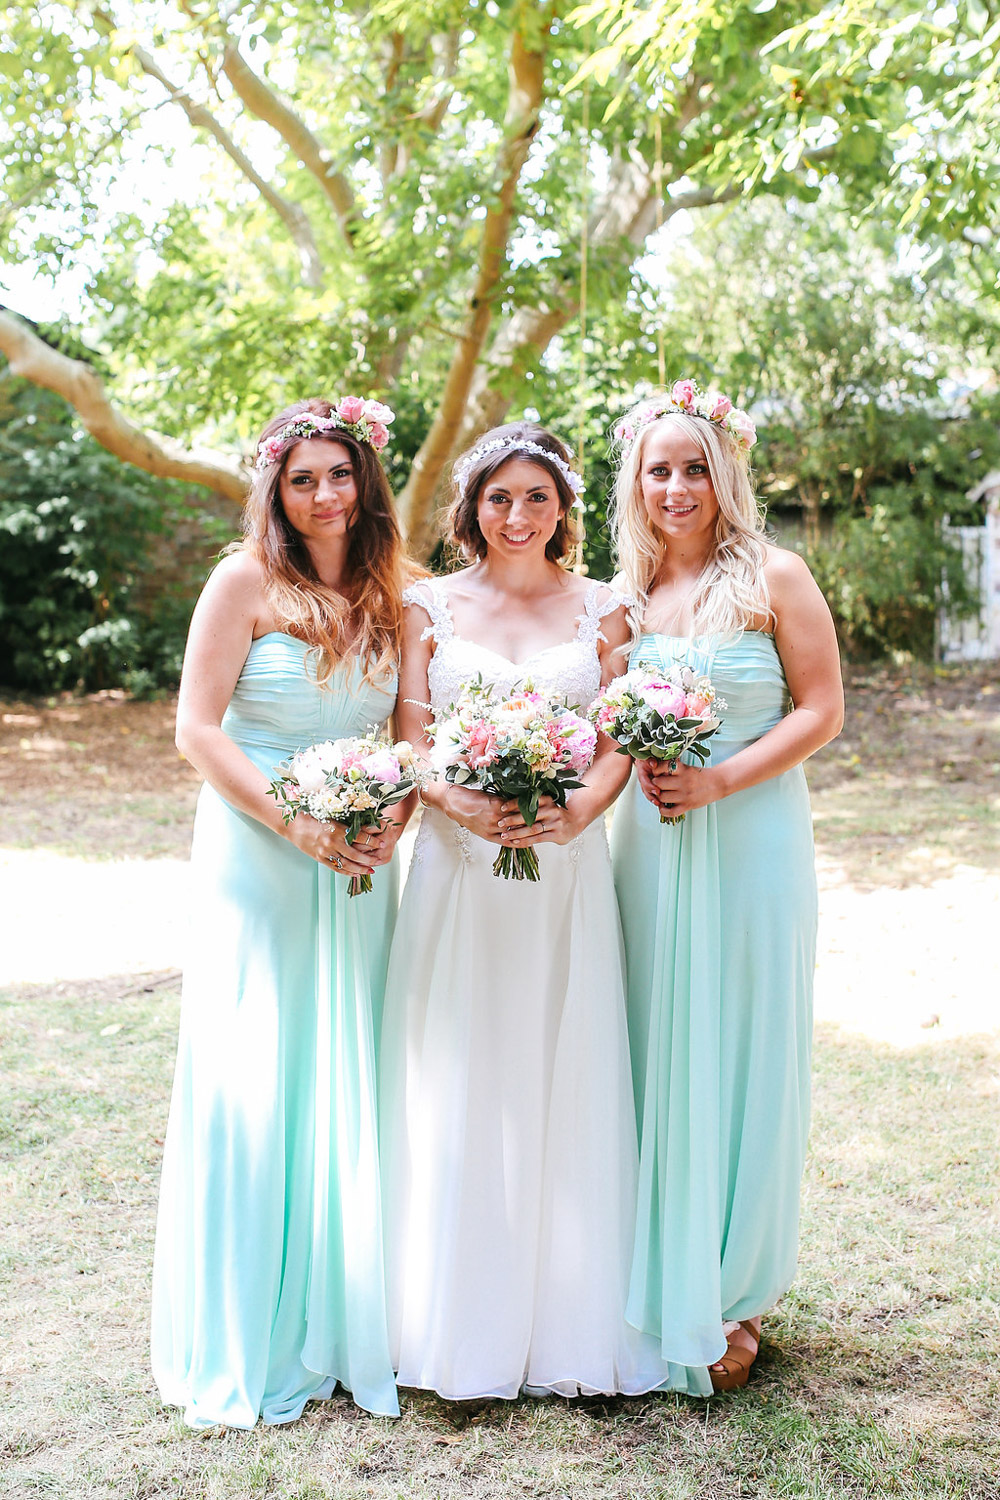 Homemade Lace Wedding Dress For A Classic Outdoor Marquee - Homemade Wedding Dress